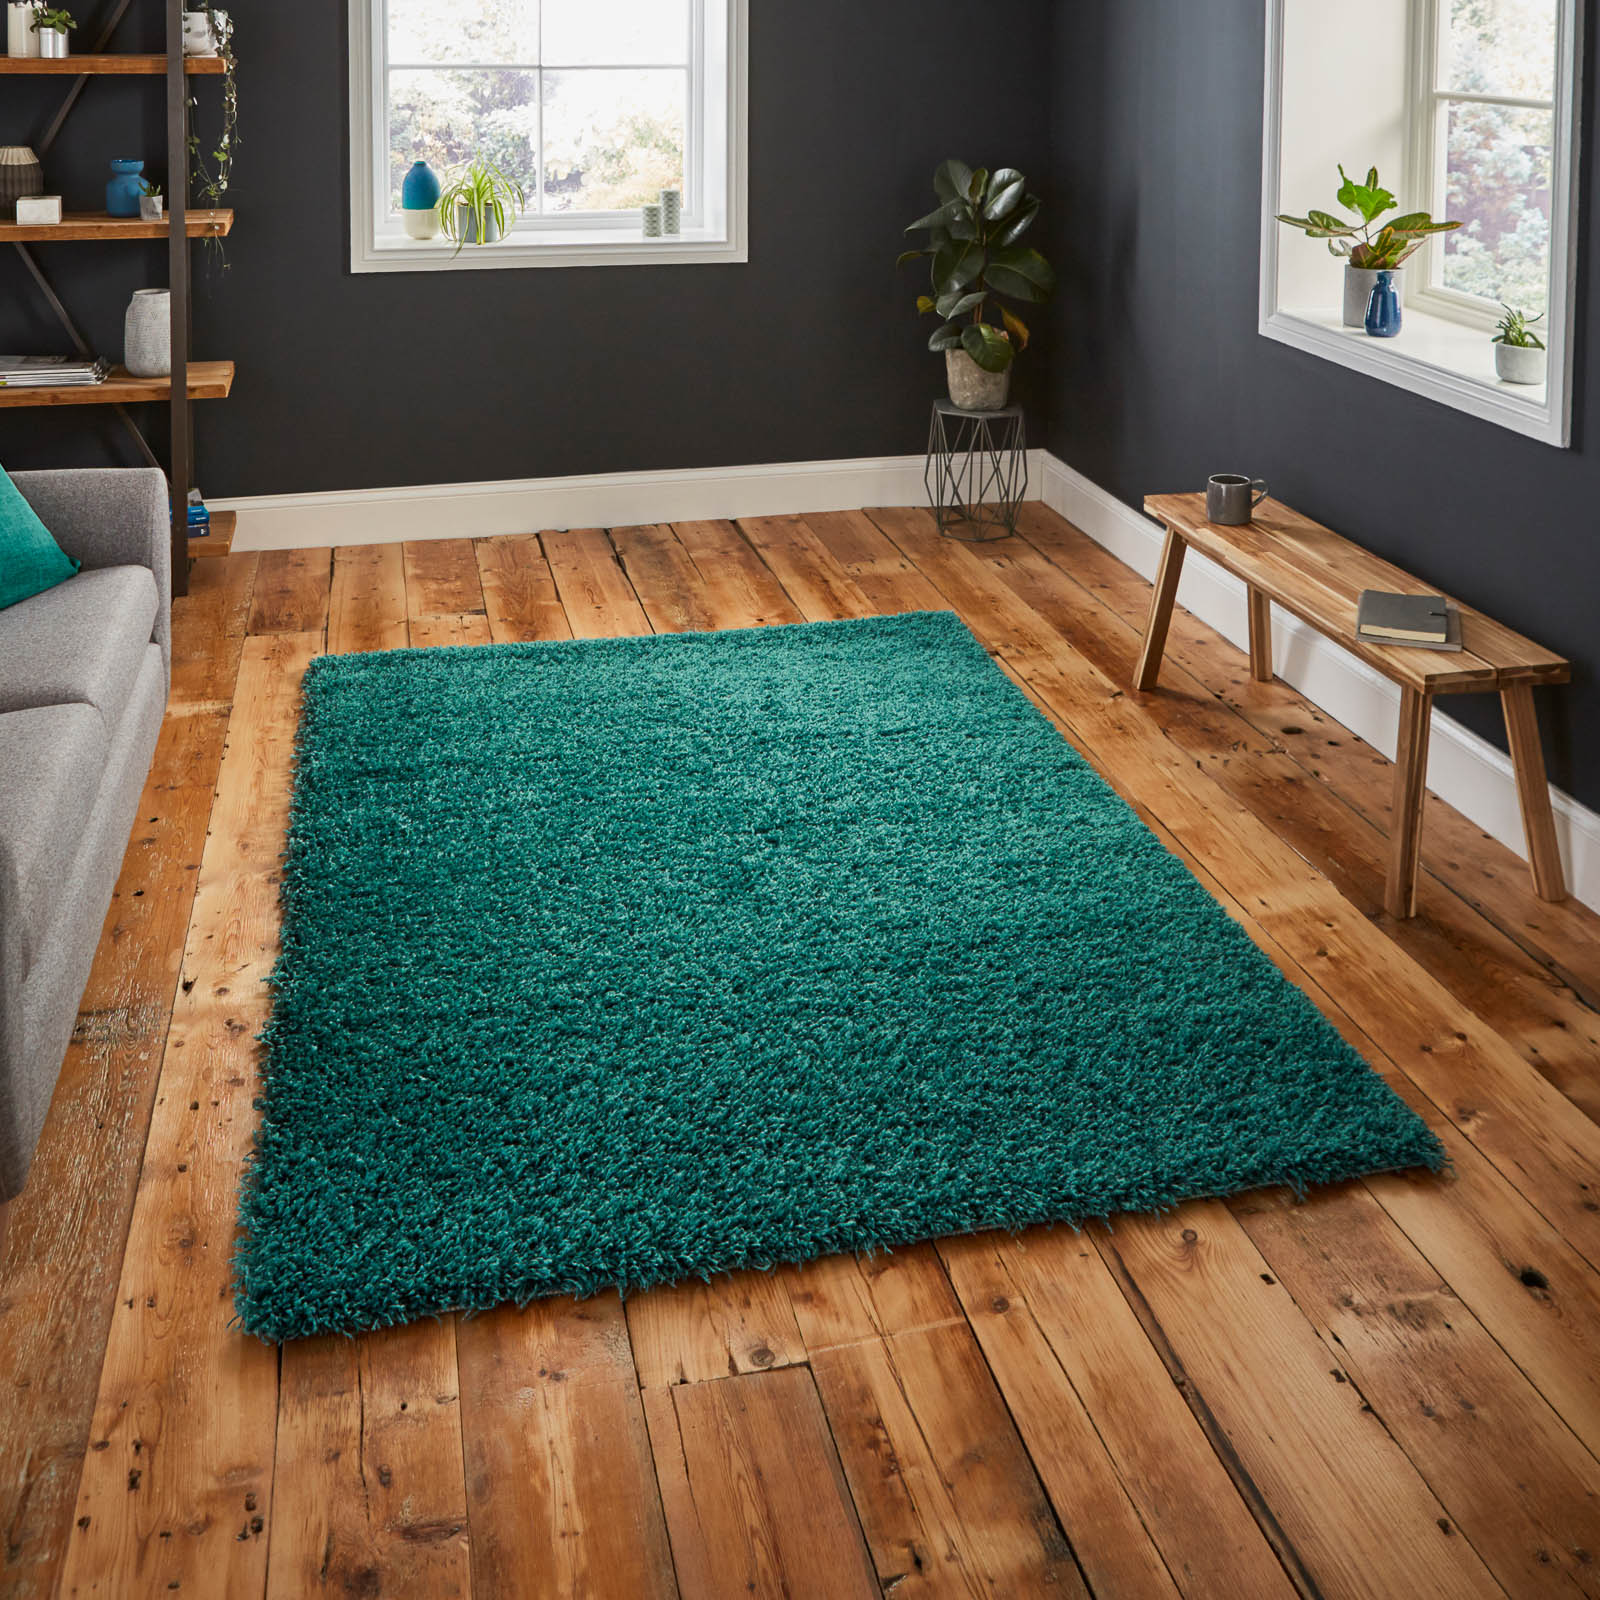 Discover How To Stop Rugs Slipping On Your Floor By The Rug Seller